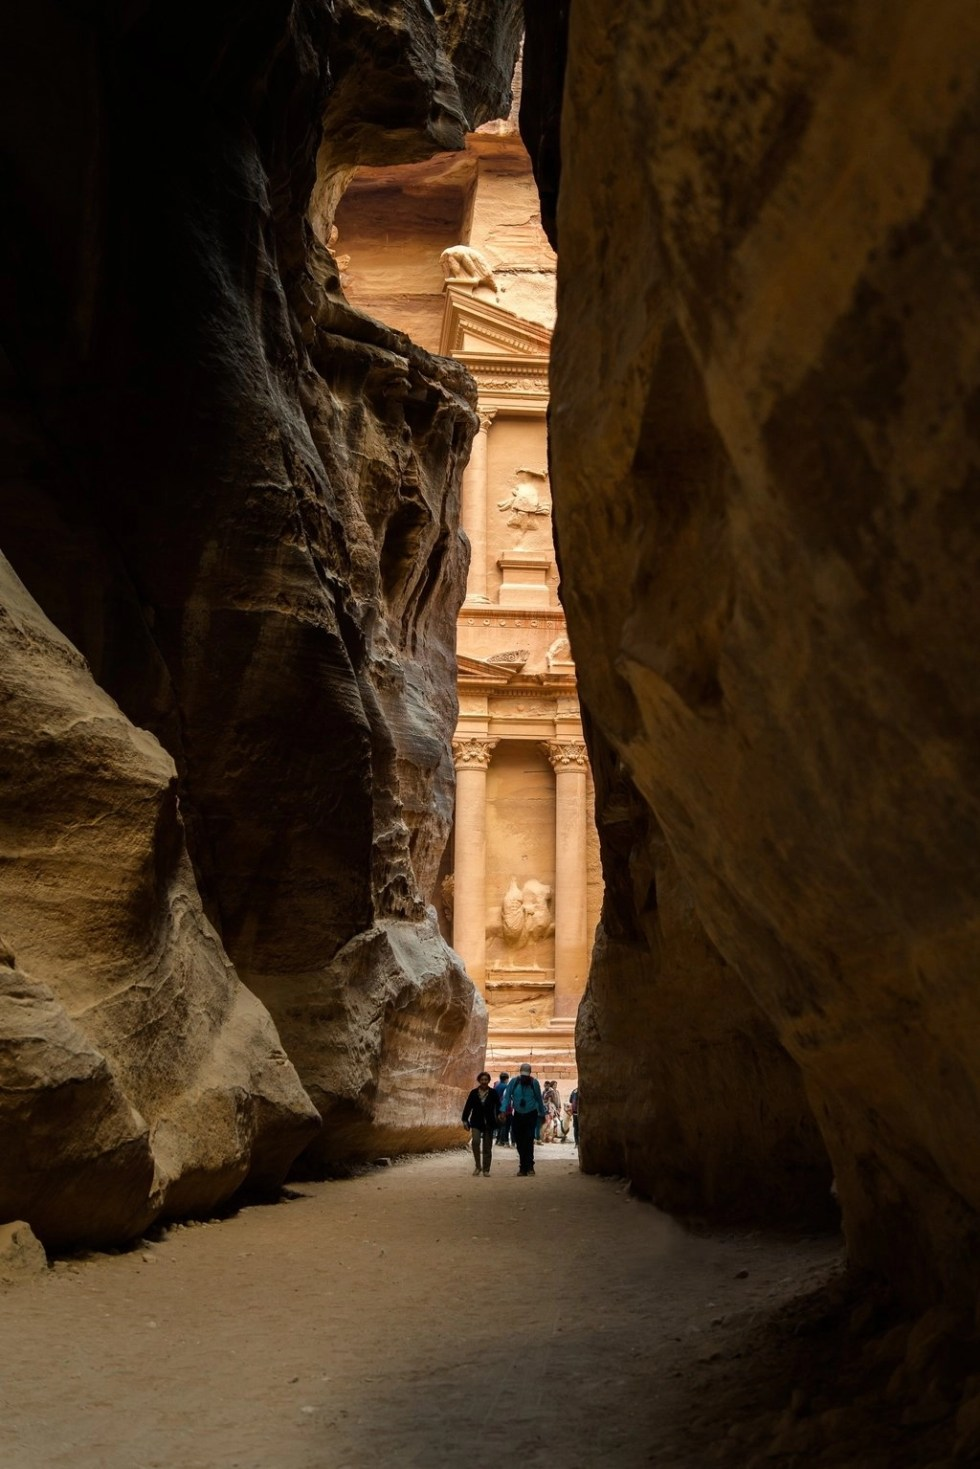 Petra's Treasury as seen through the Siq